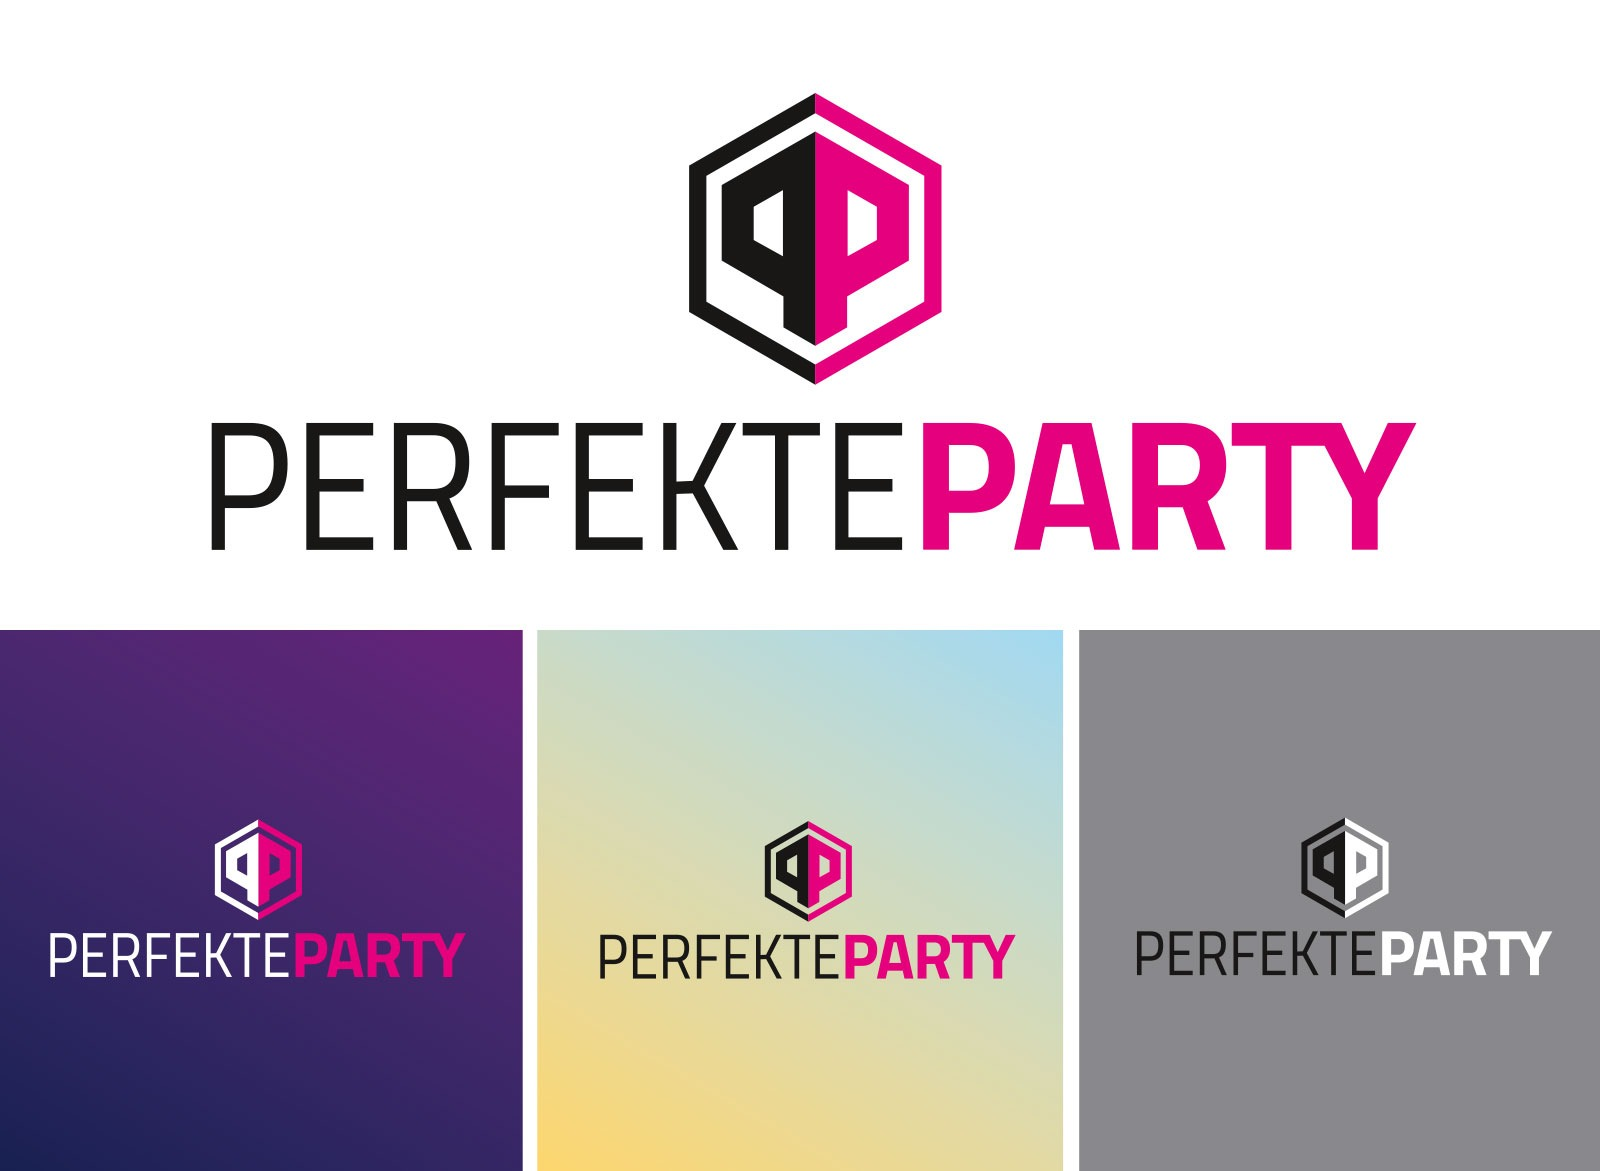 Logo Design für Perfekte Party